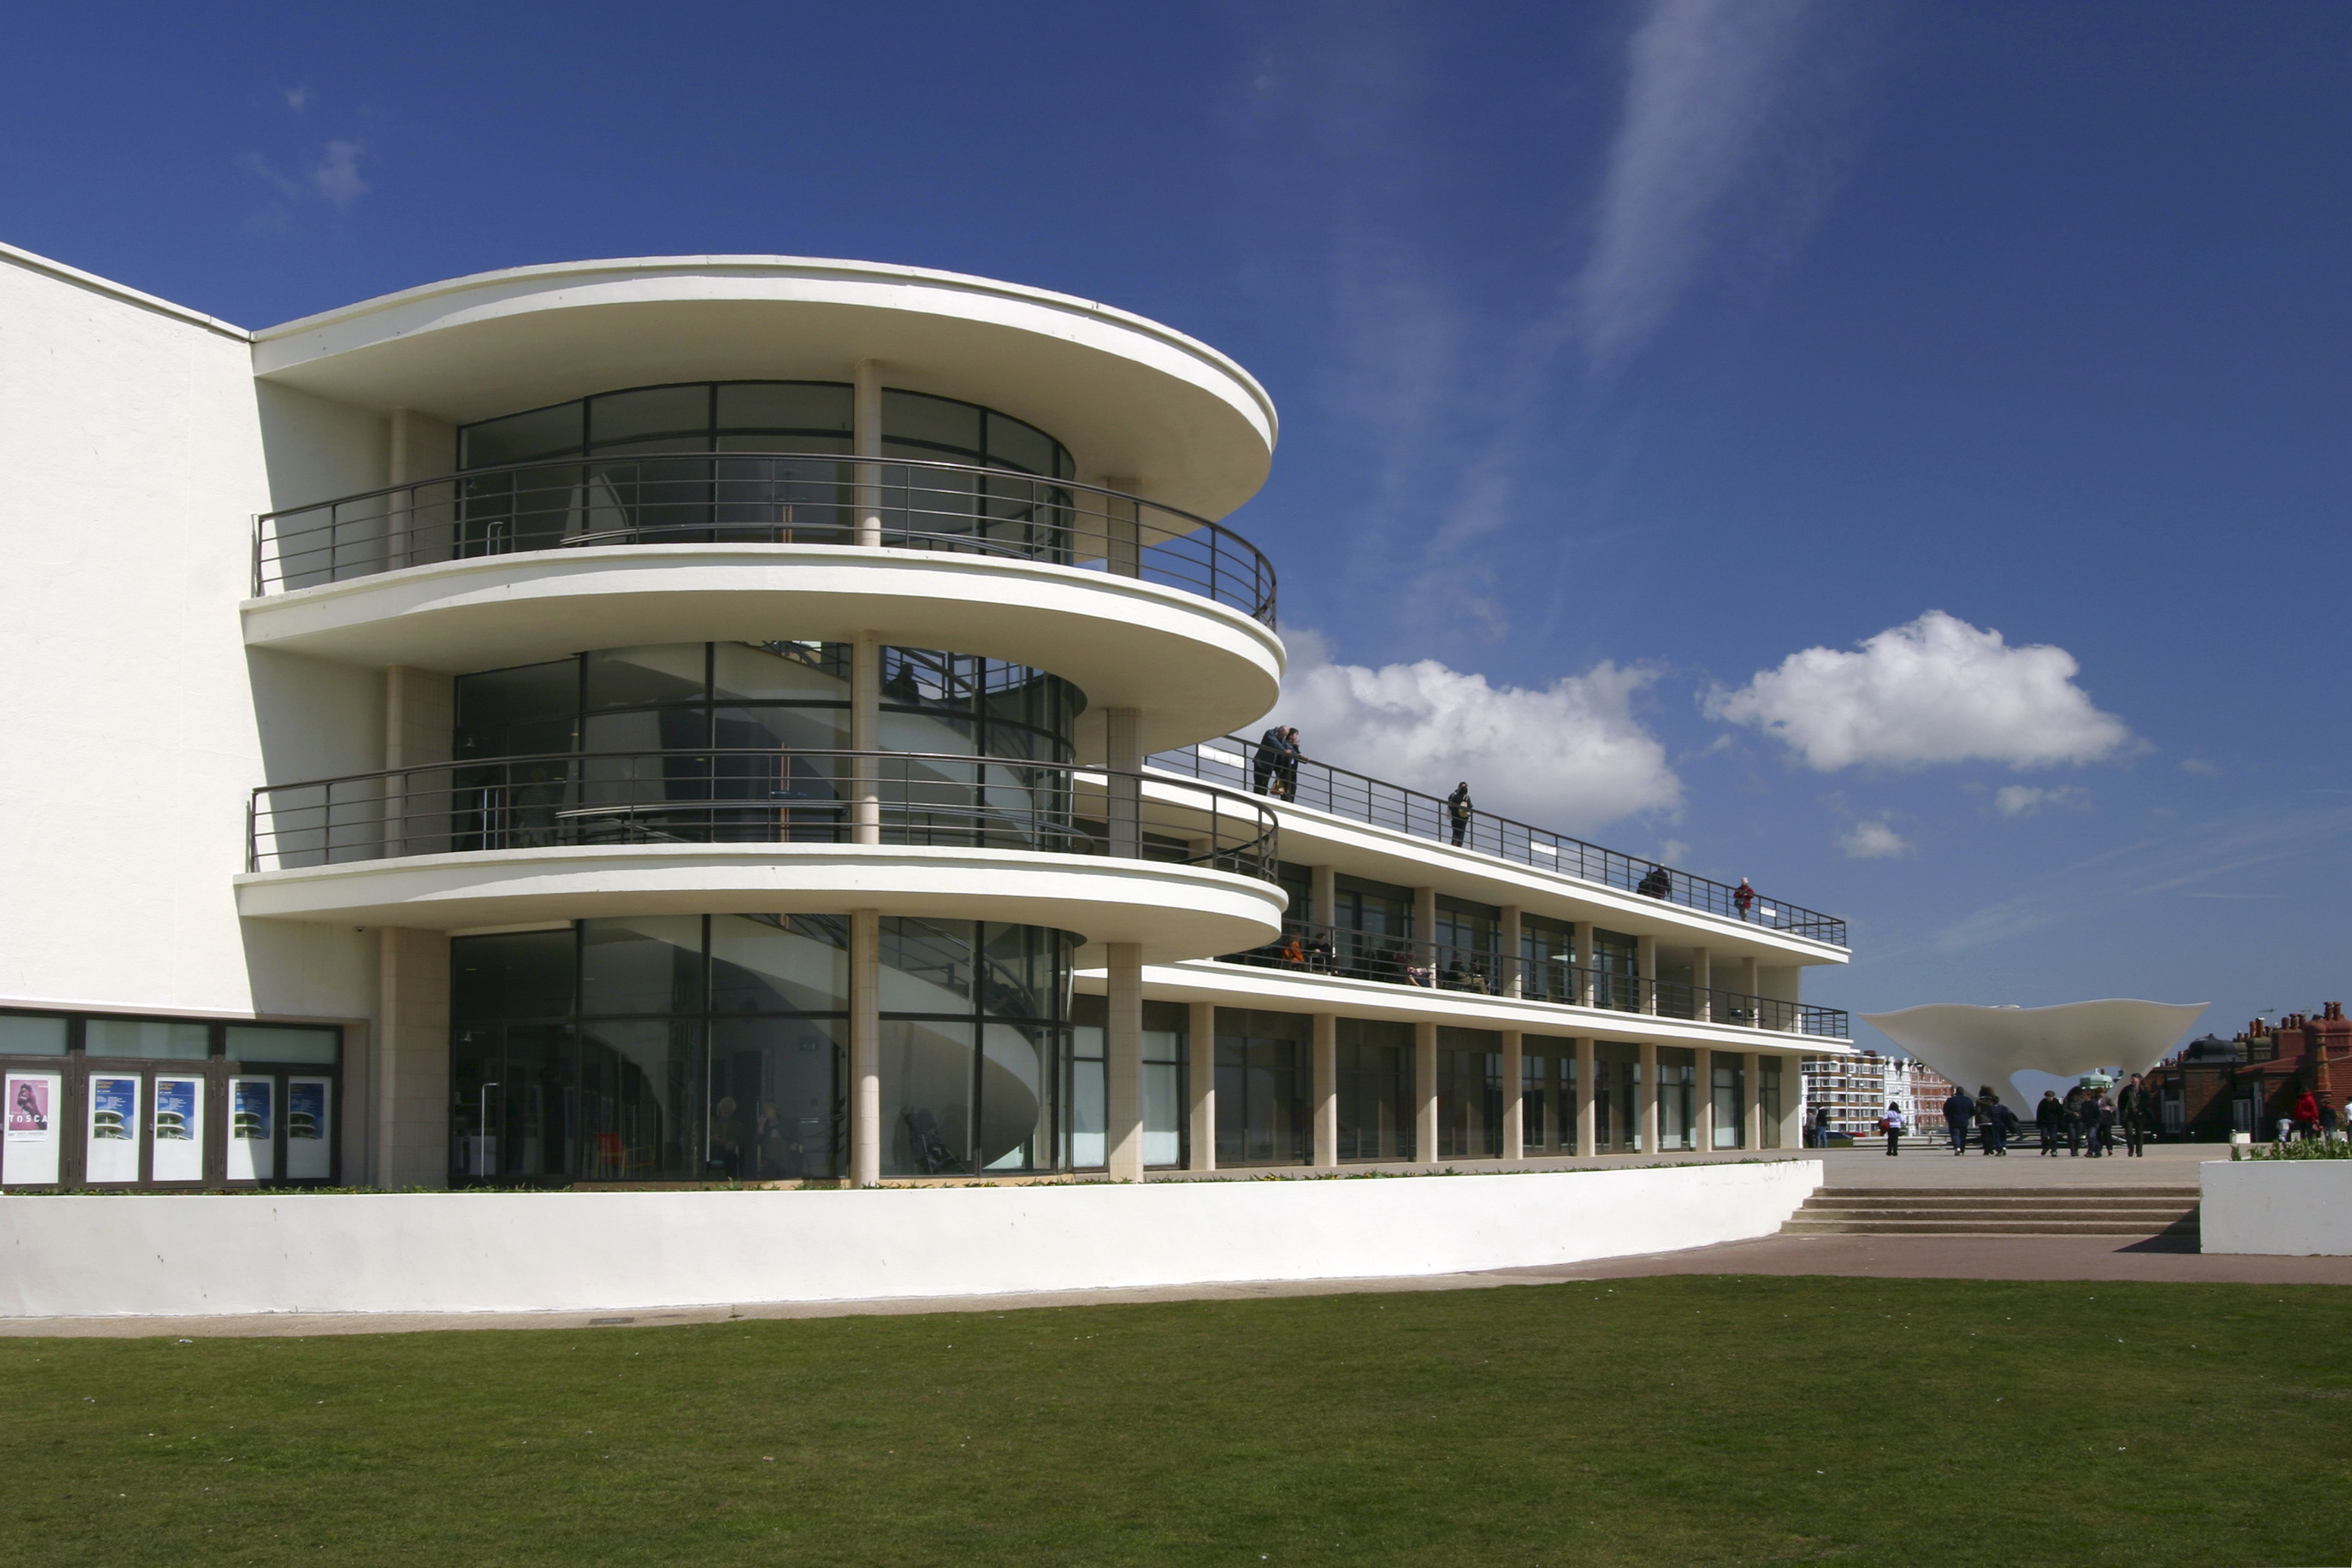 sleek white horizontal oriented building with central disc-shaped glassed balconies